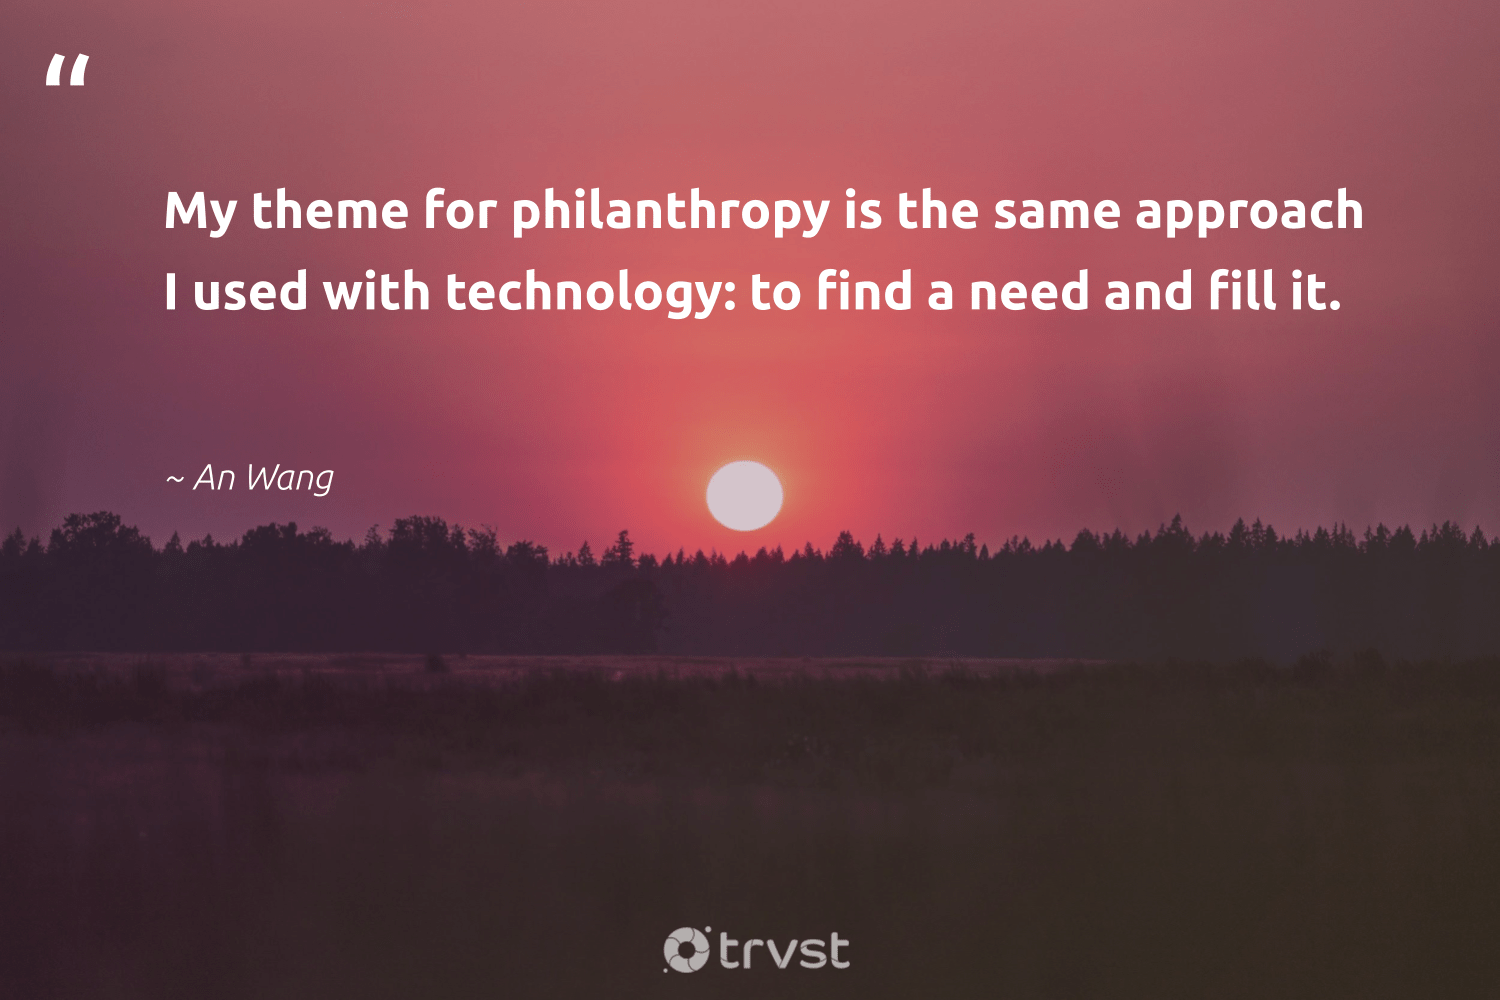 """My theme for philanthropy is the same approach I used with technology: to find a need and fill it.""  - An Wang #trvst #quotes #philanthropy #philanthropic #giveforthefuture #changemakers #takeaction #itscooltobekind #togetherwecan #bethechange #impact #collectiveaction"